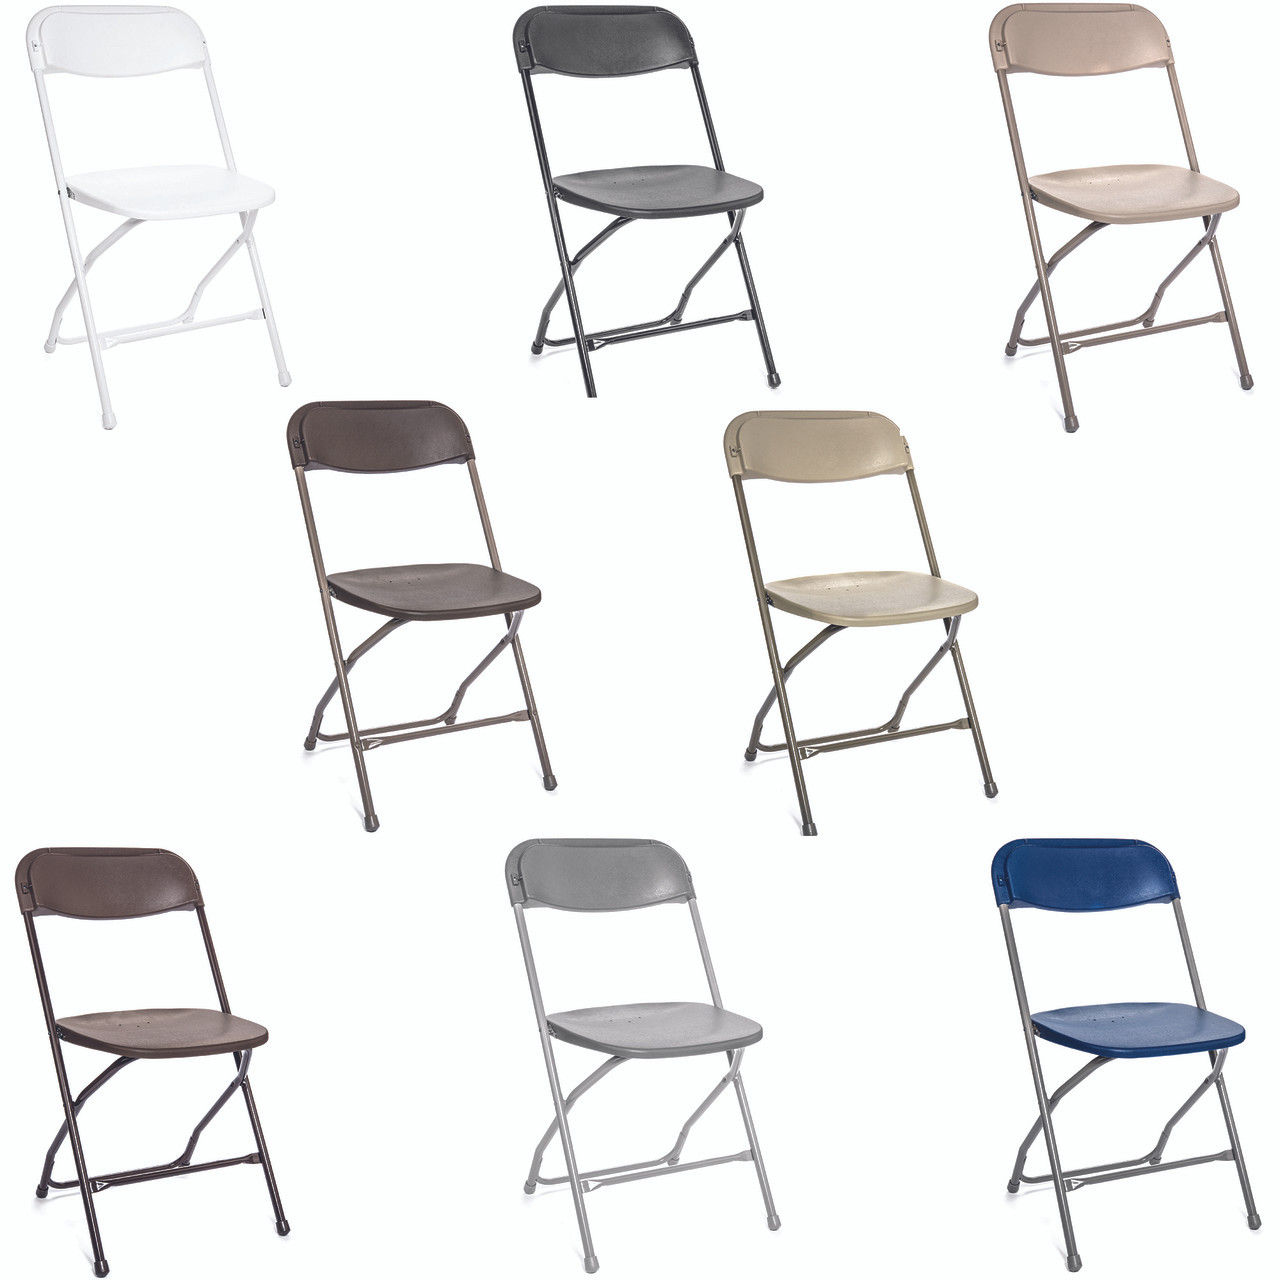 Wondrous Rhino Series Plastic Folding Chair 800 Lb Static Tested Perfect For Events And Party Rentals Durable Easy Storage And Lightweight Machost Co Dining Chair Design Ideas Machostcouk